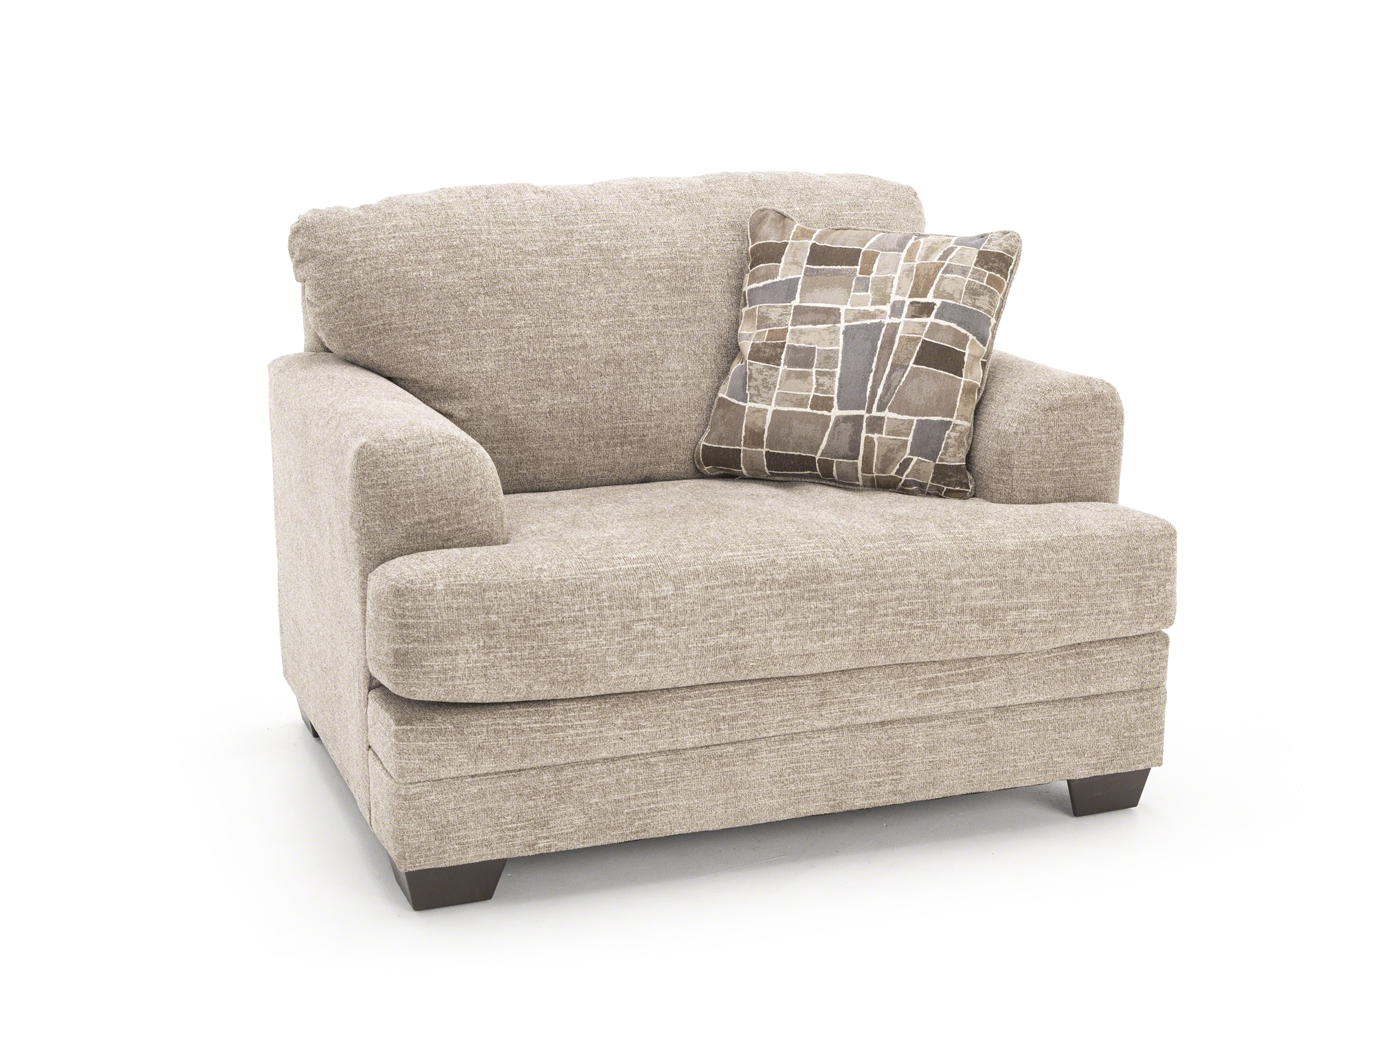 100 My Reading Chair And Ottoman Furniture Place Your Favorite Reading Chair Ikea To Any Space